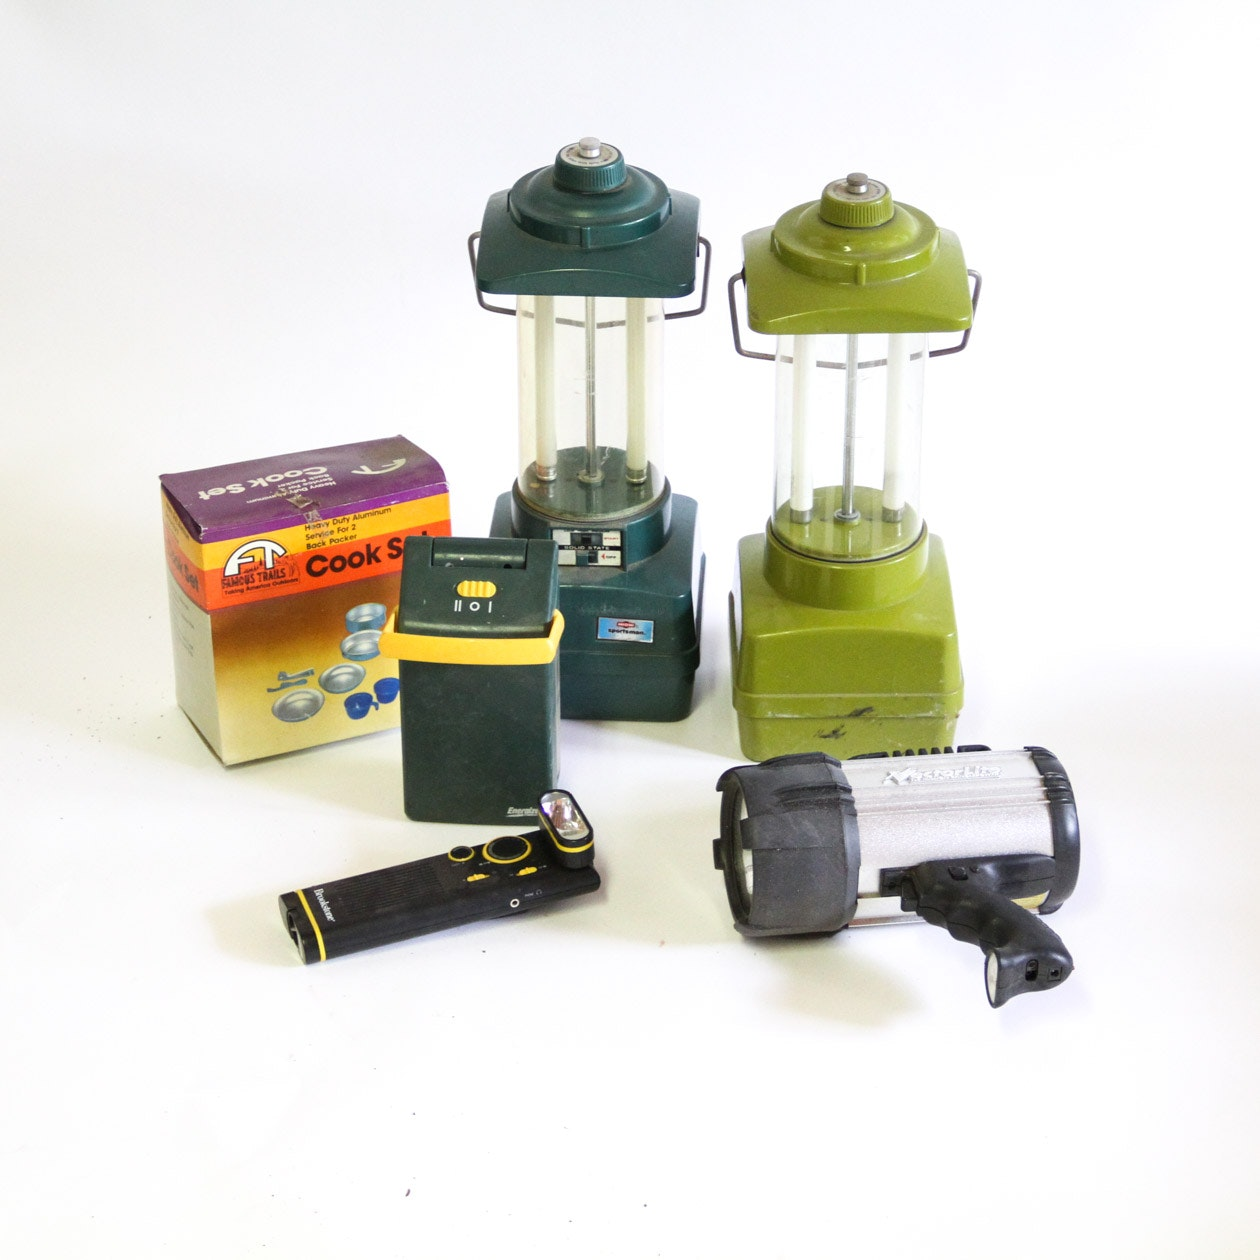 Collection of Camping Lanterns and Cook Set